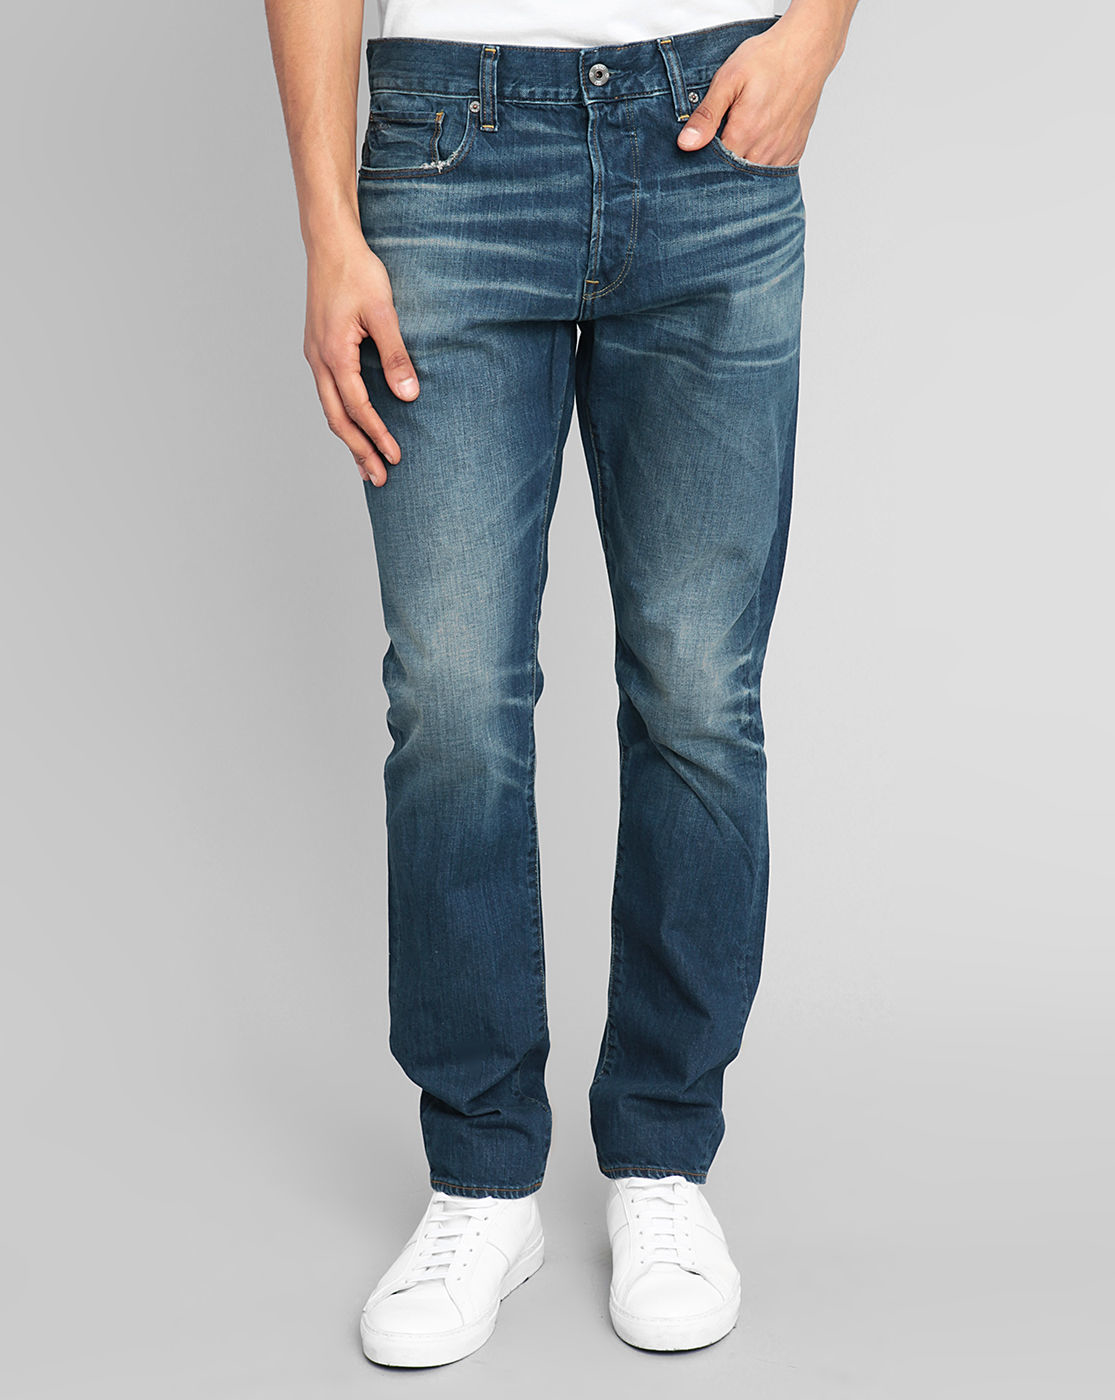 g star raw washed 3301 tapered blue jeans in blue for men. Black Bedroom Furniture Sets. Home Design Ideas